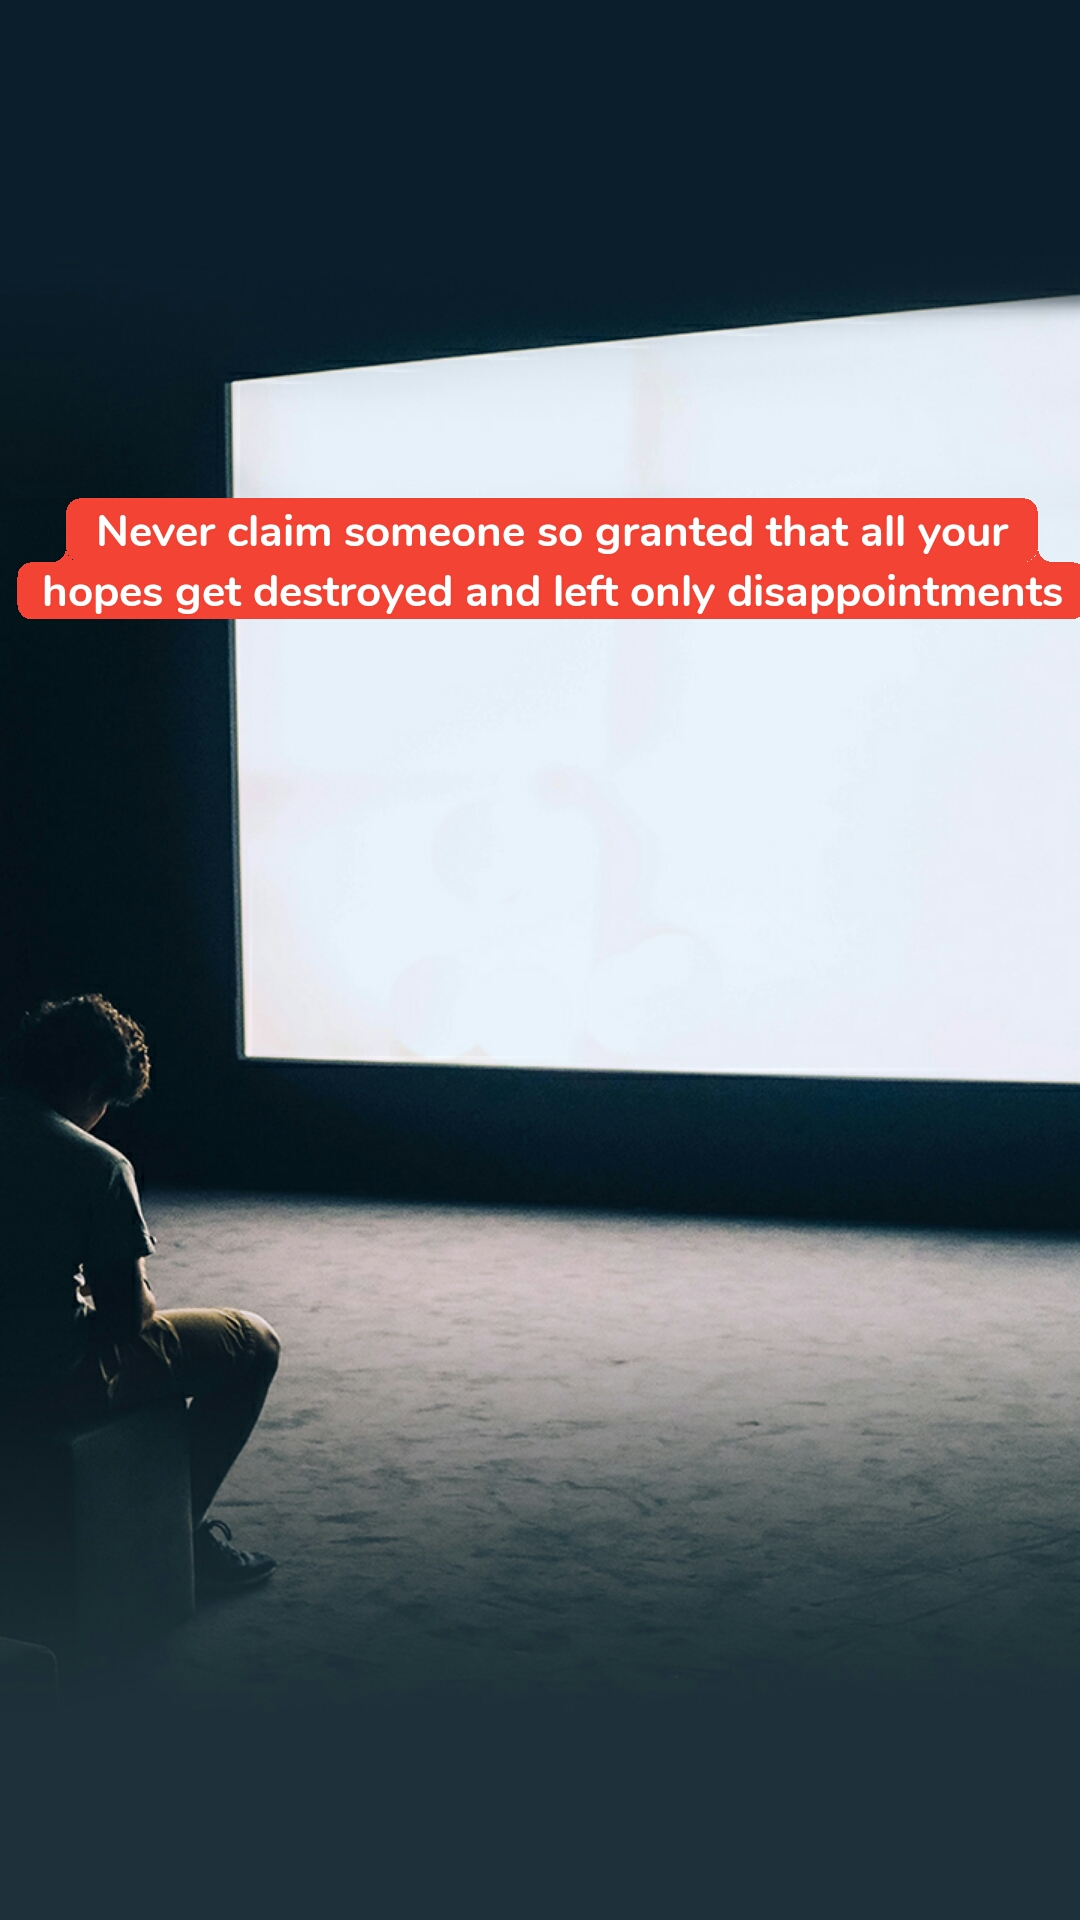 Never claim someone so granted that all your hopes get destroyed and left only disappointments